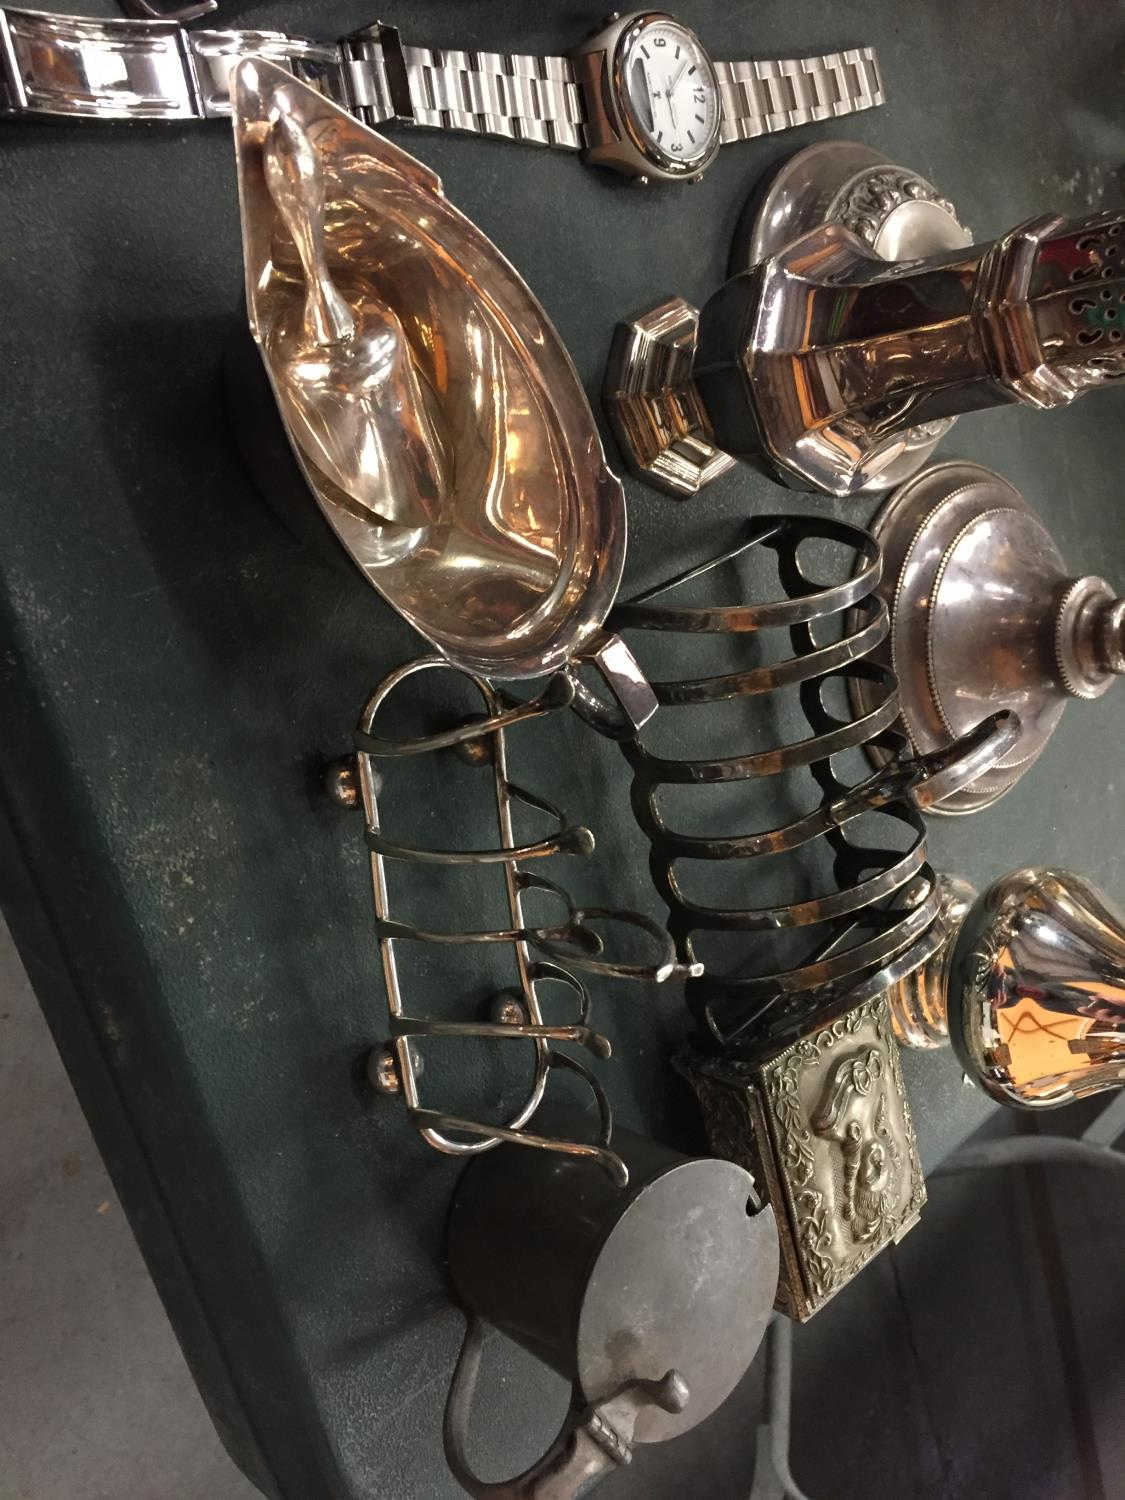 A MIXED SELECTION OF SILVER PLATED ITEMS TO INCLUDE TWO TOAST RACKS, CANDLESTICKS ETC - Image 3 of 3